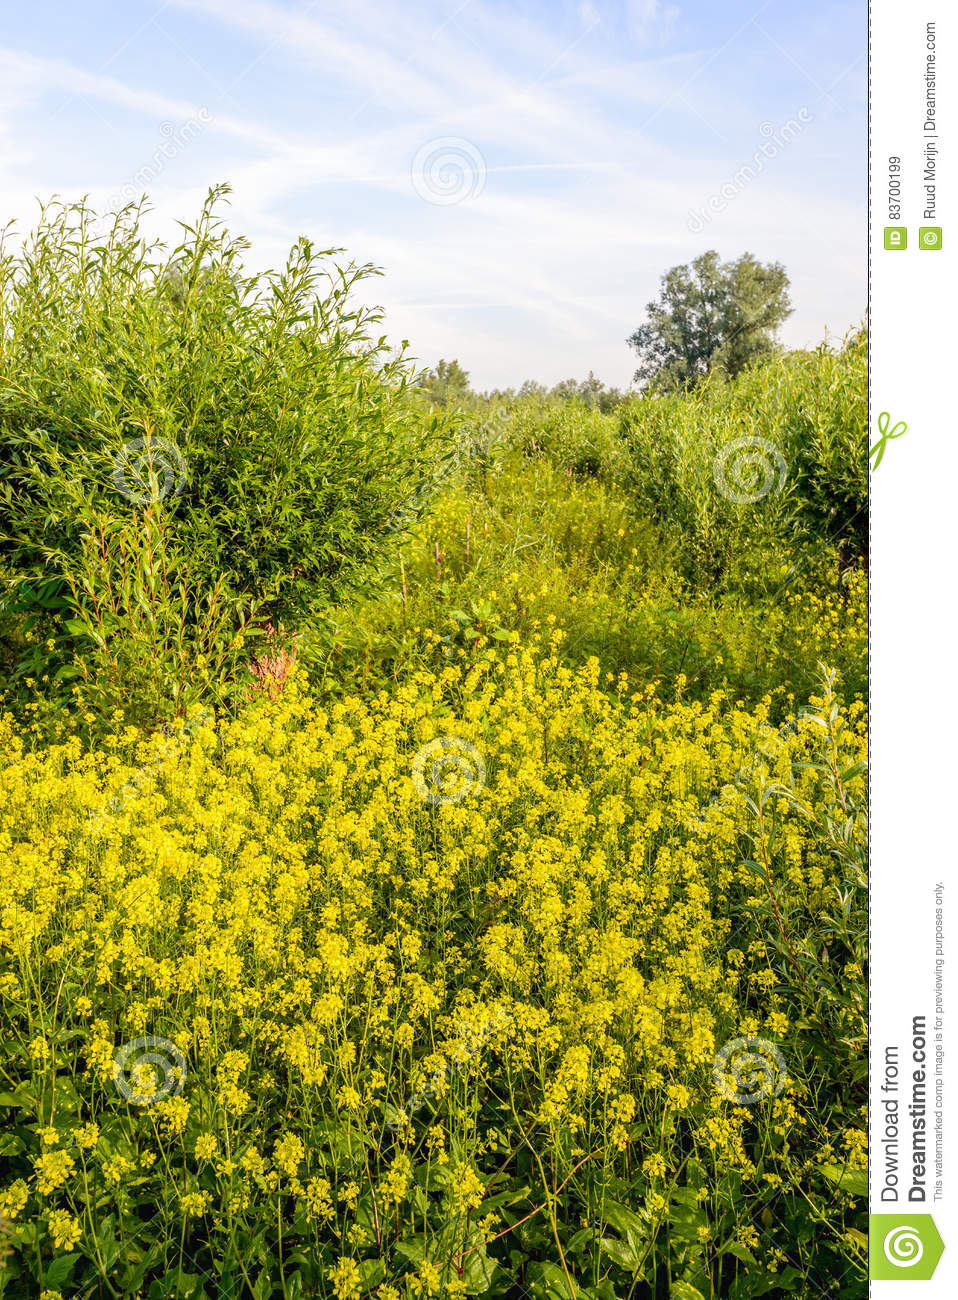 Willow shrubs and yellow flowering rapeseed in a nature reserve download willow shrubs and yellow flowering rapeseed in a nature reserve stock image image of mightylinksfo